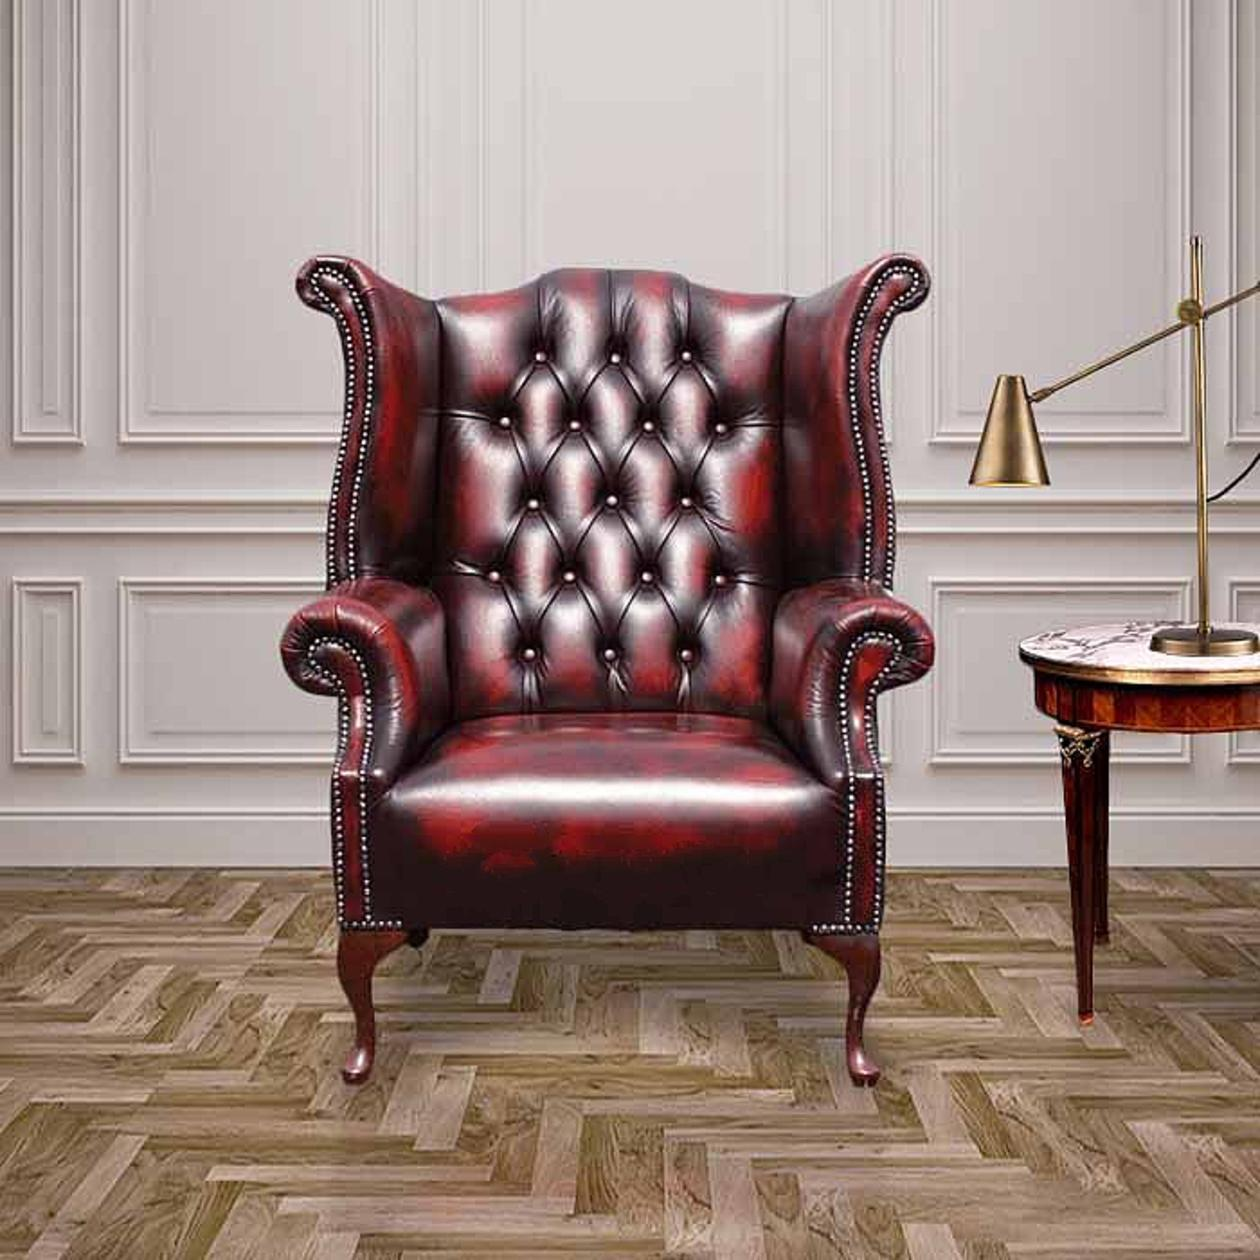 Oxblood Chesterfield 1780 High back Wing chair DesignerSofas4U